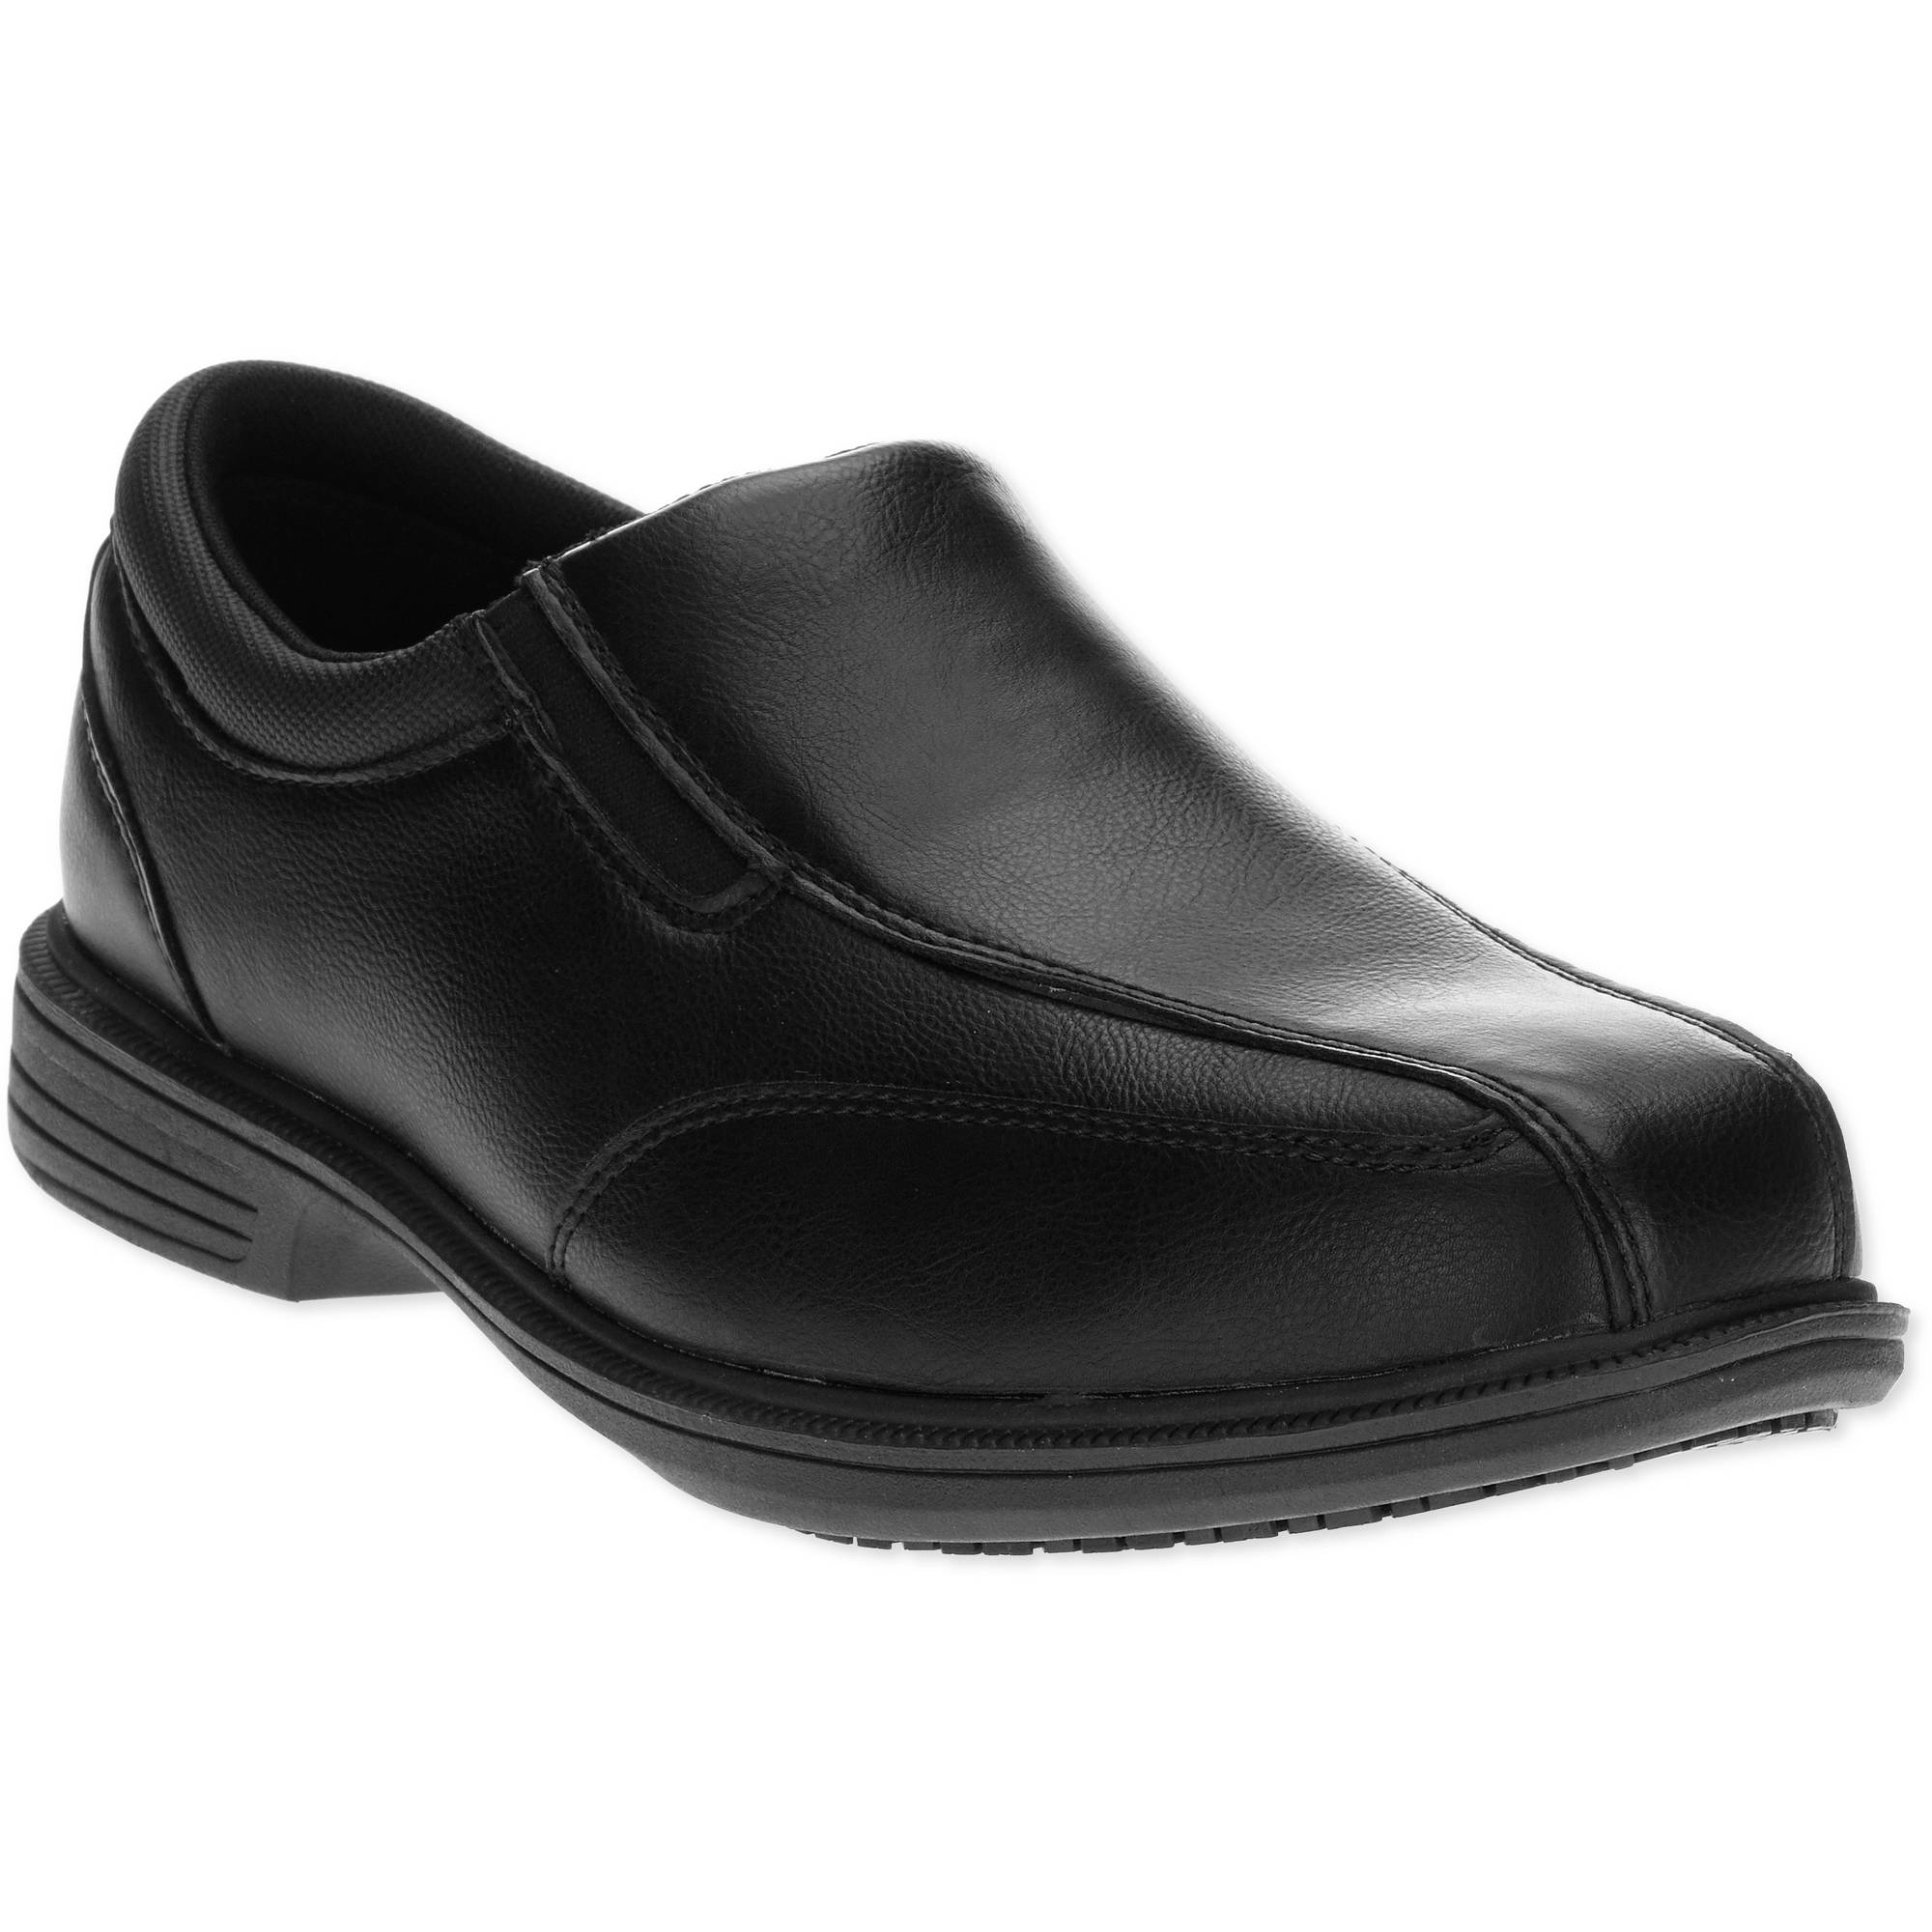 Tredsafe Men's Executive II Slip On Slip-Resistant Work Shoe by